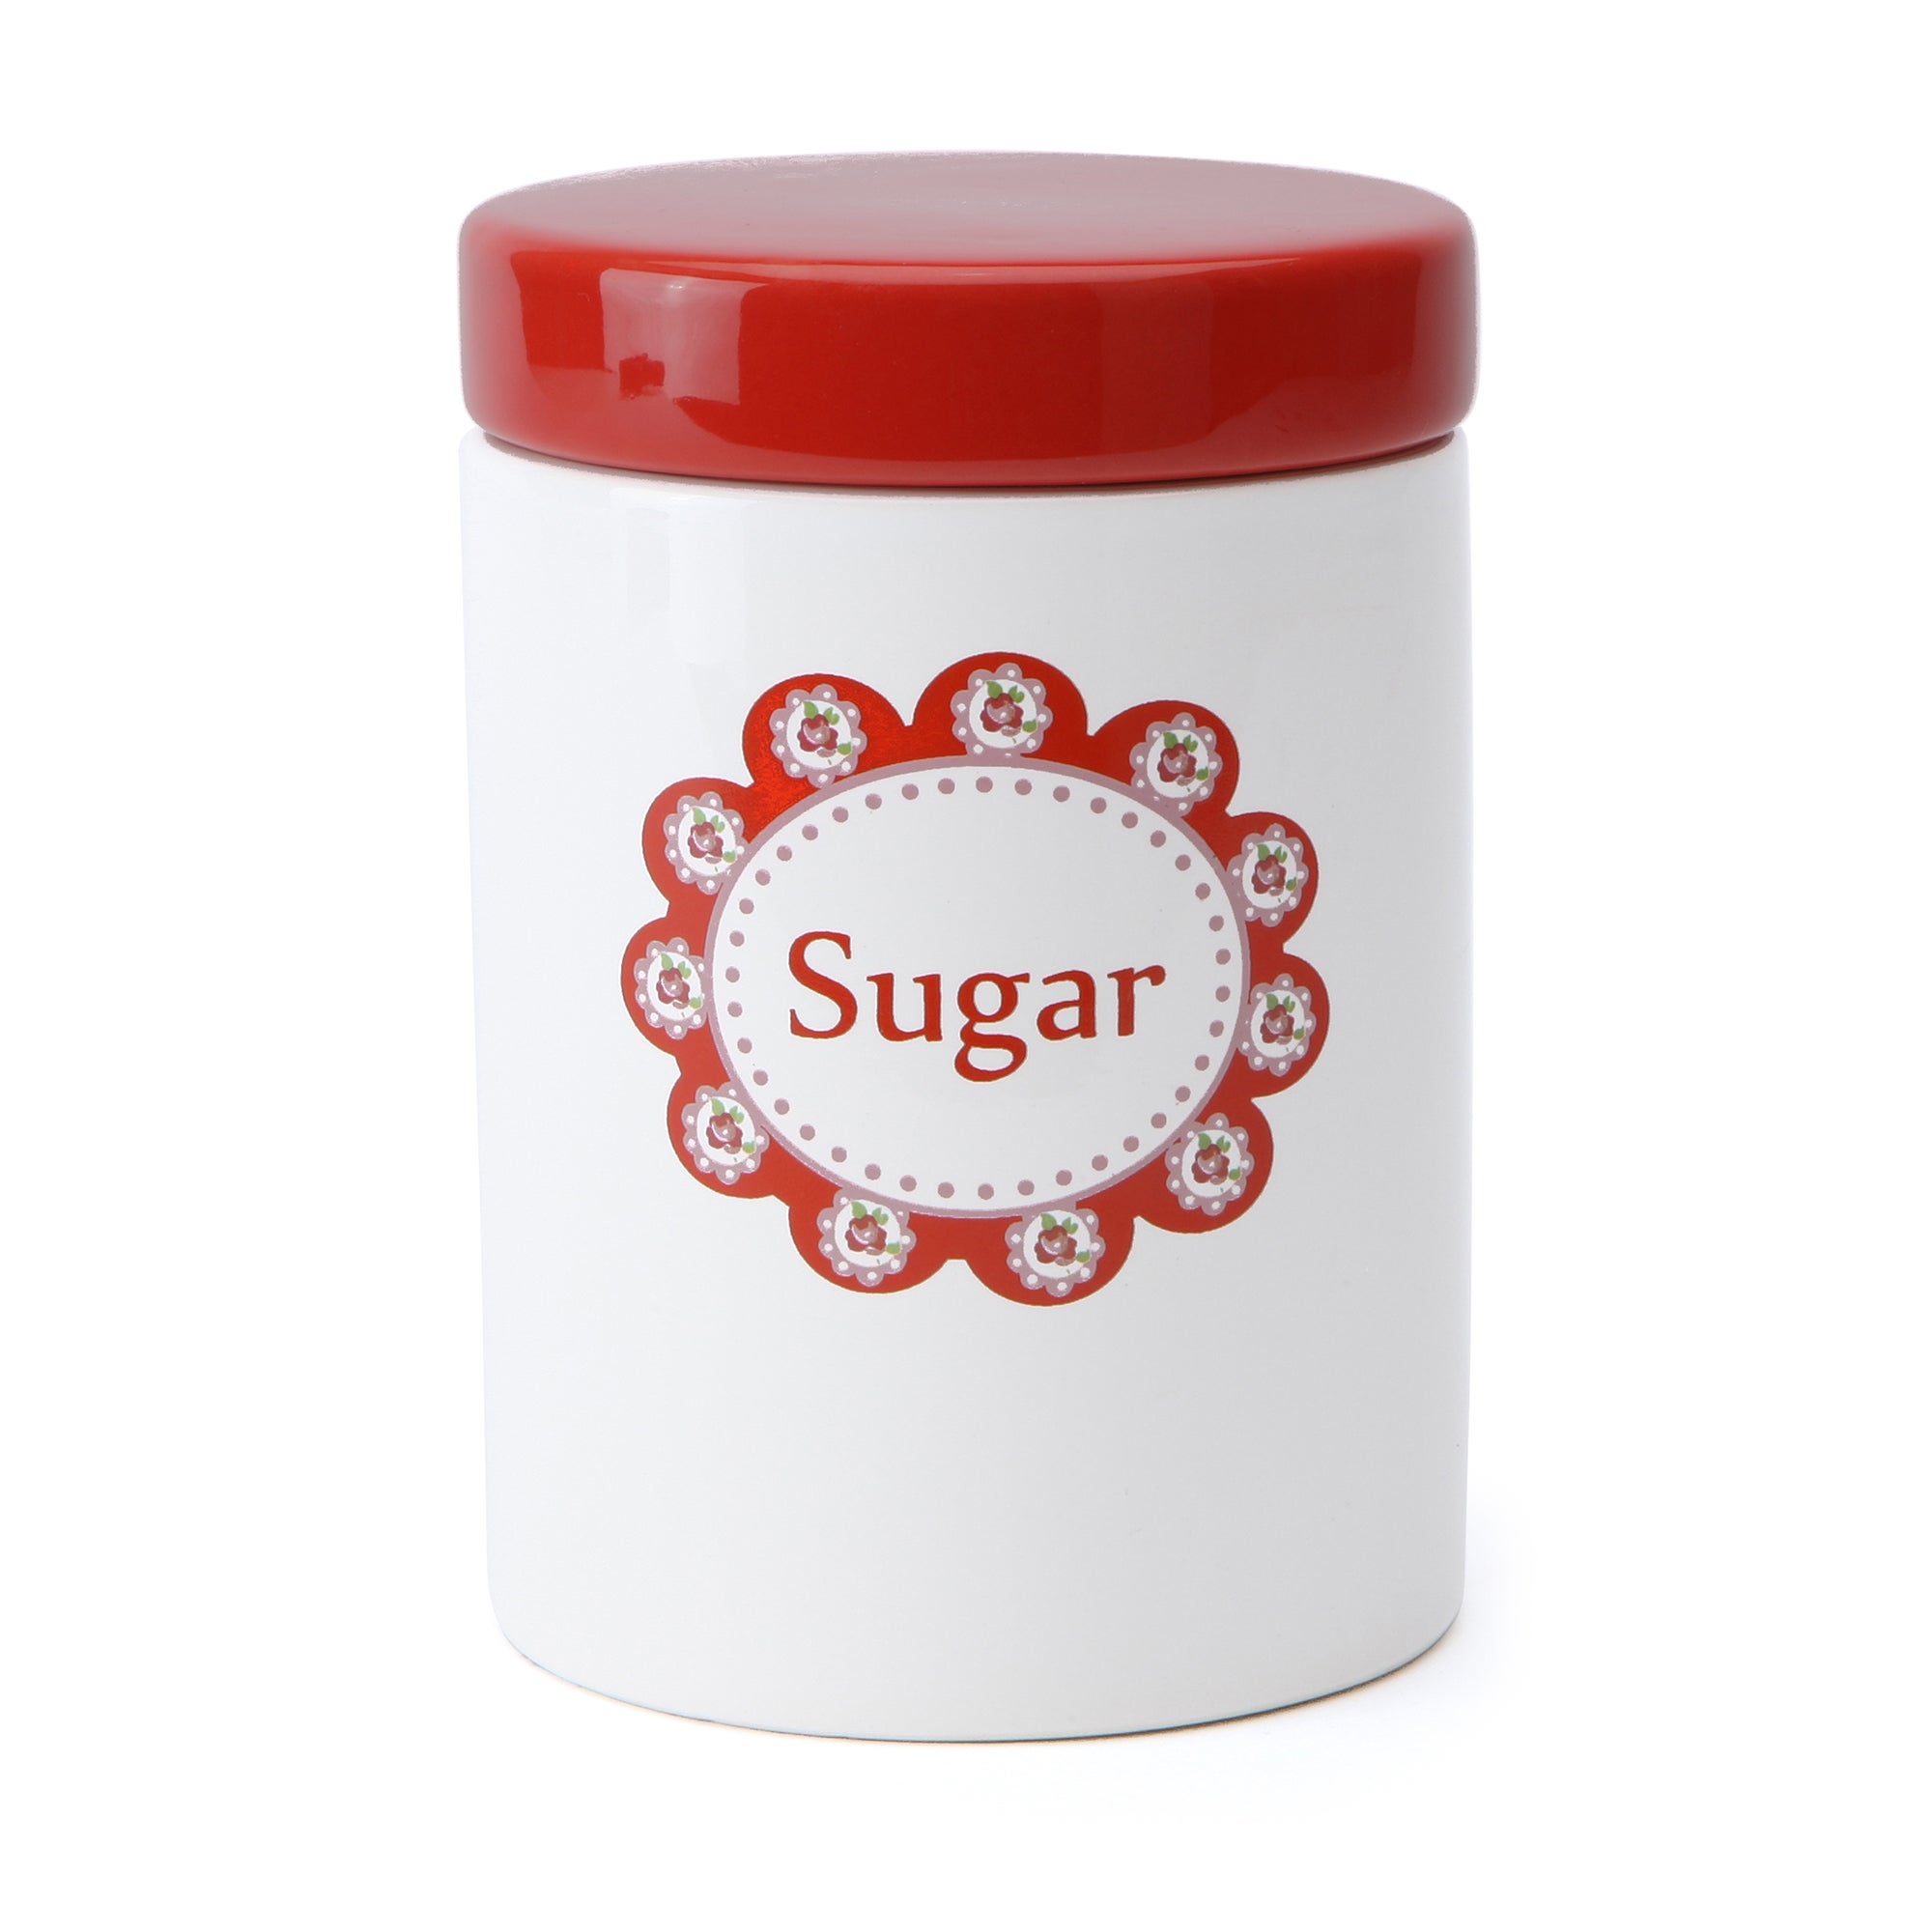 Rose and Ellis Allexton Collection Sugar Canister